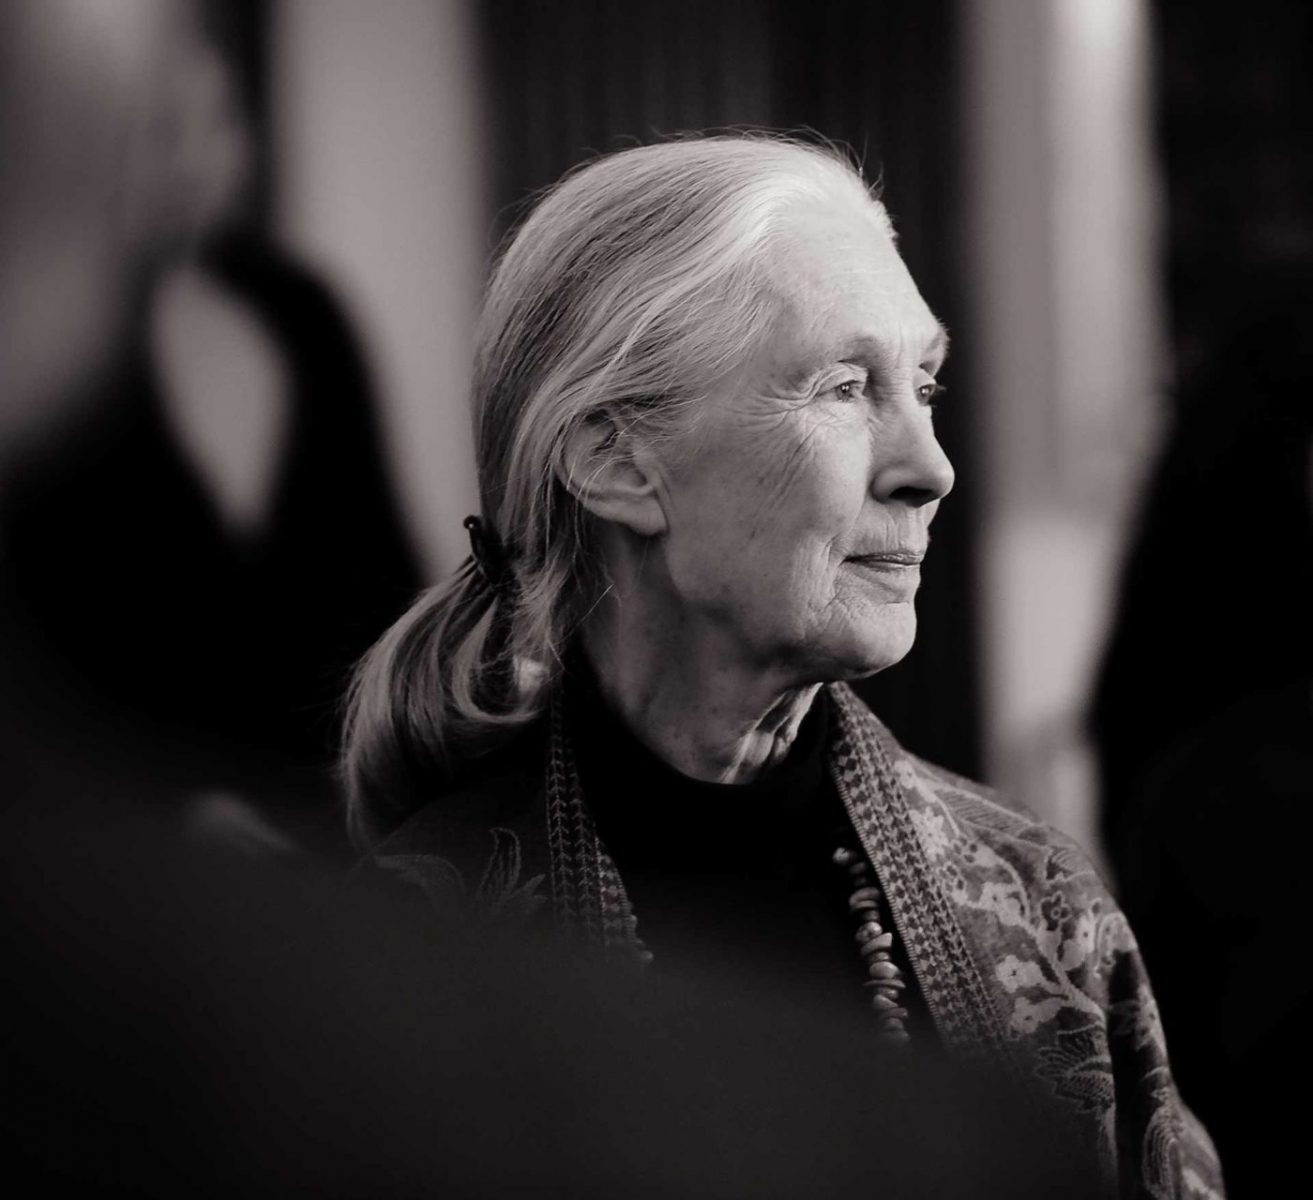 Primatologist and United National Ambassador for Peace Dr. Jane Goodall. Canada